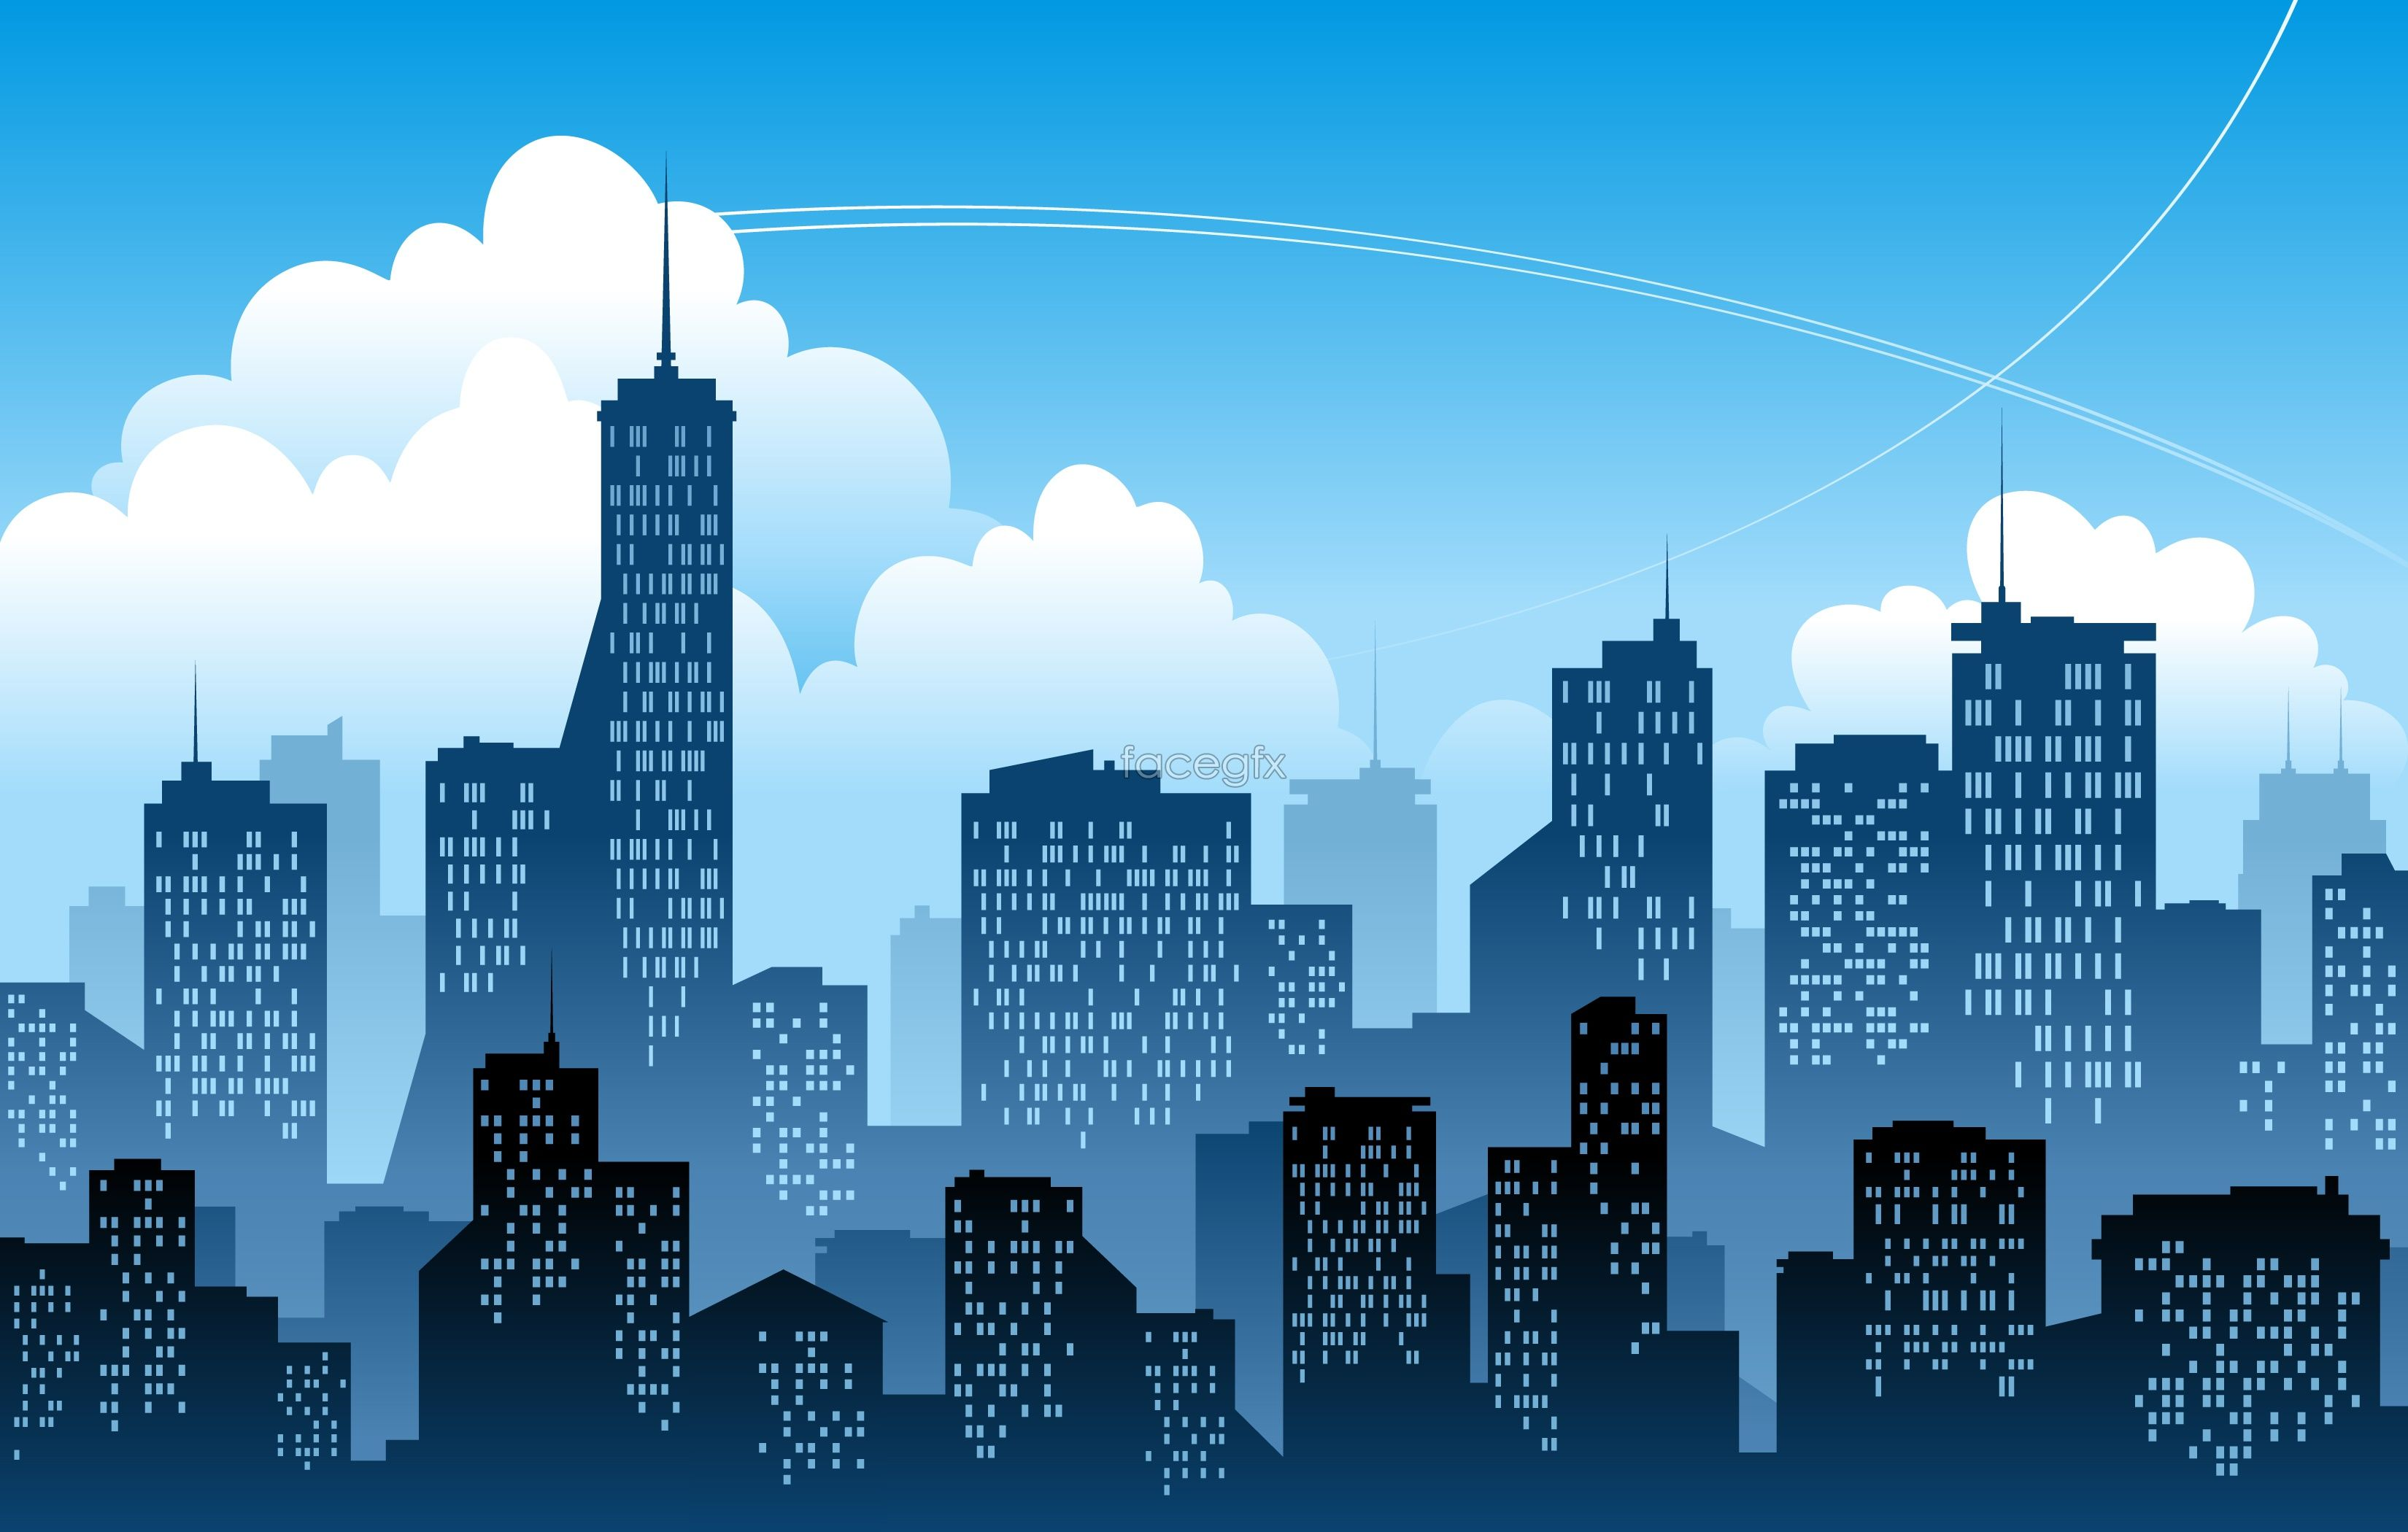 The City Silhouette Vector For Free Download City Silhouette City Vector City Illustration